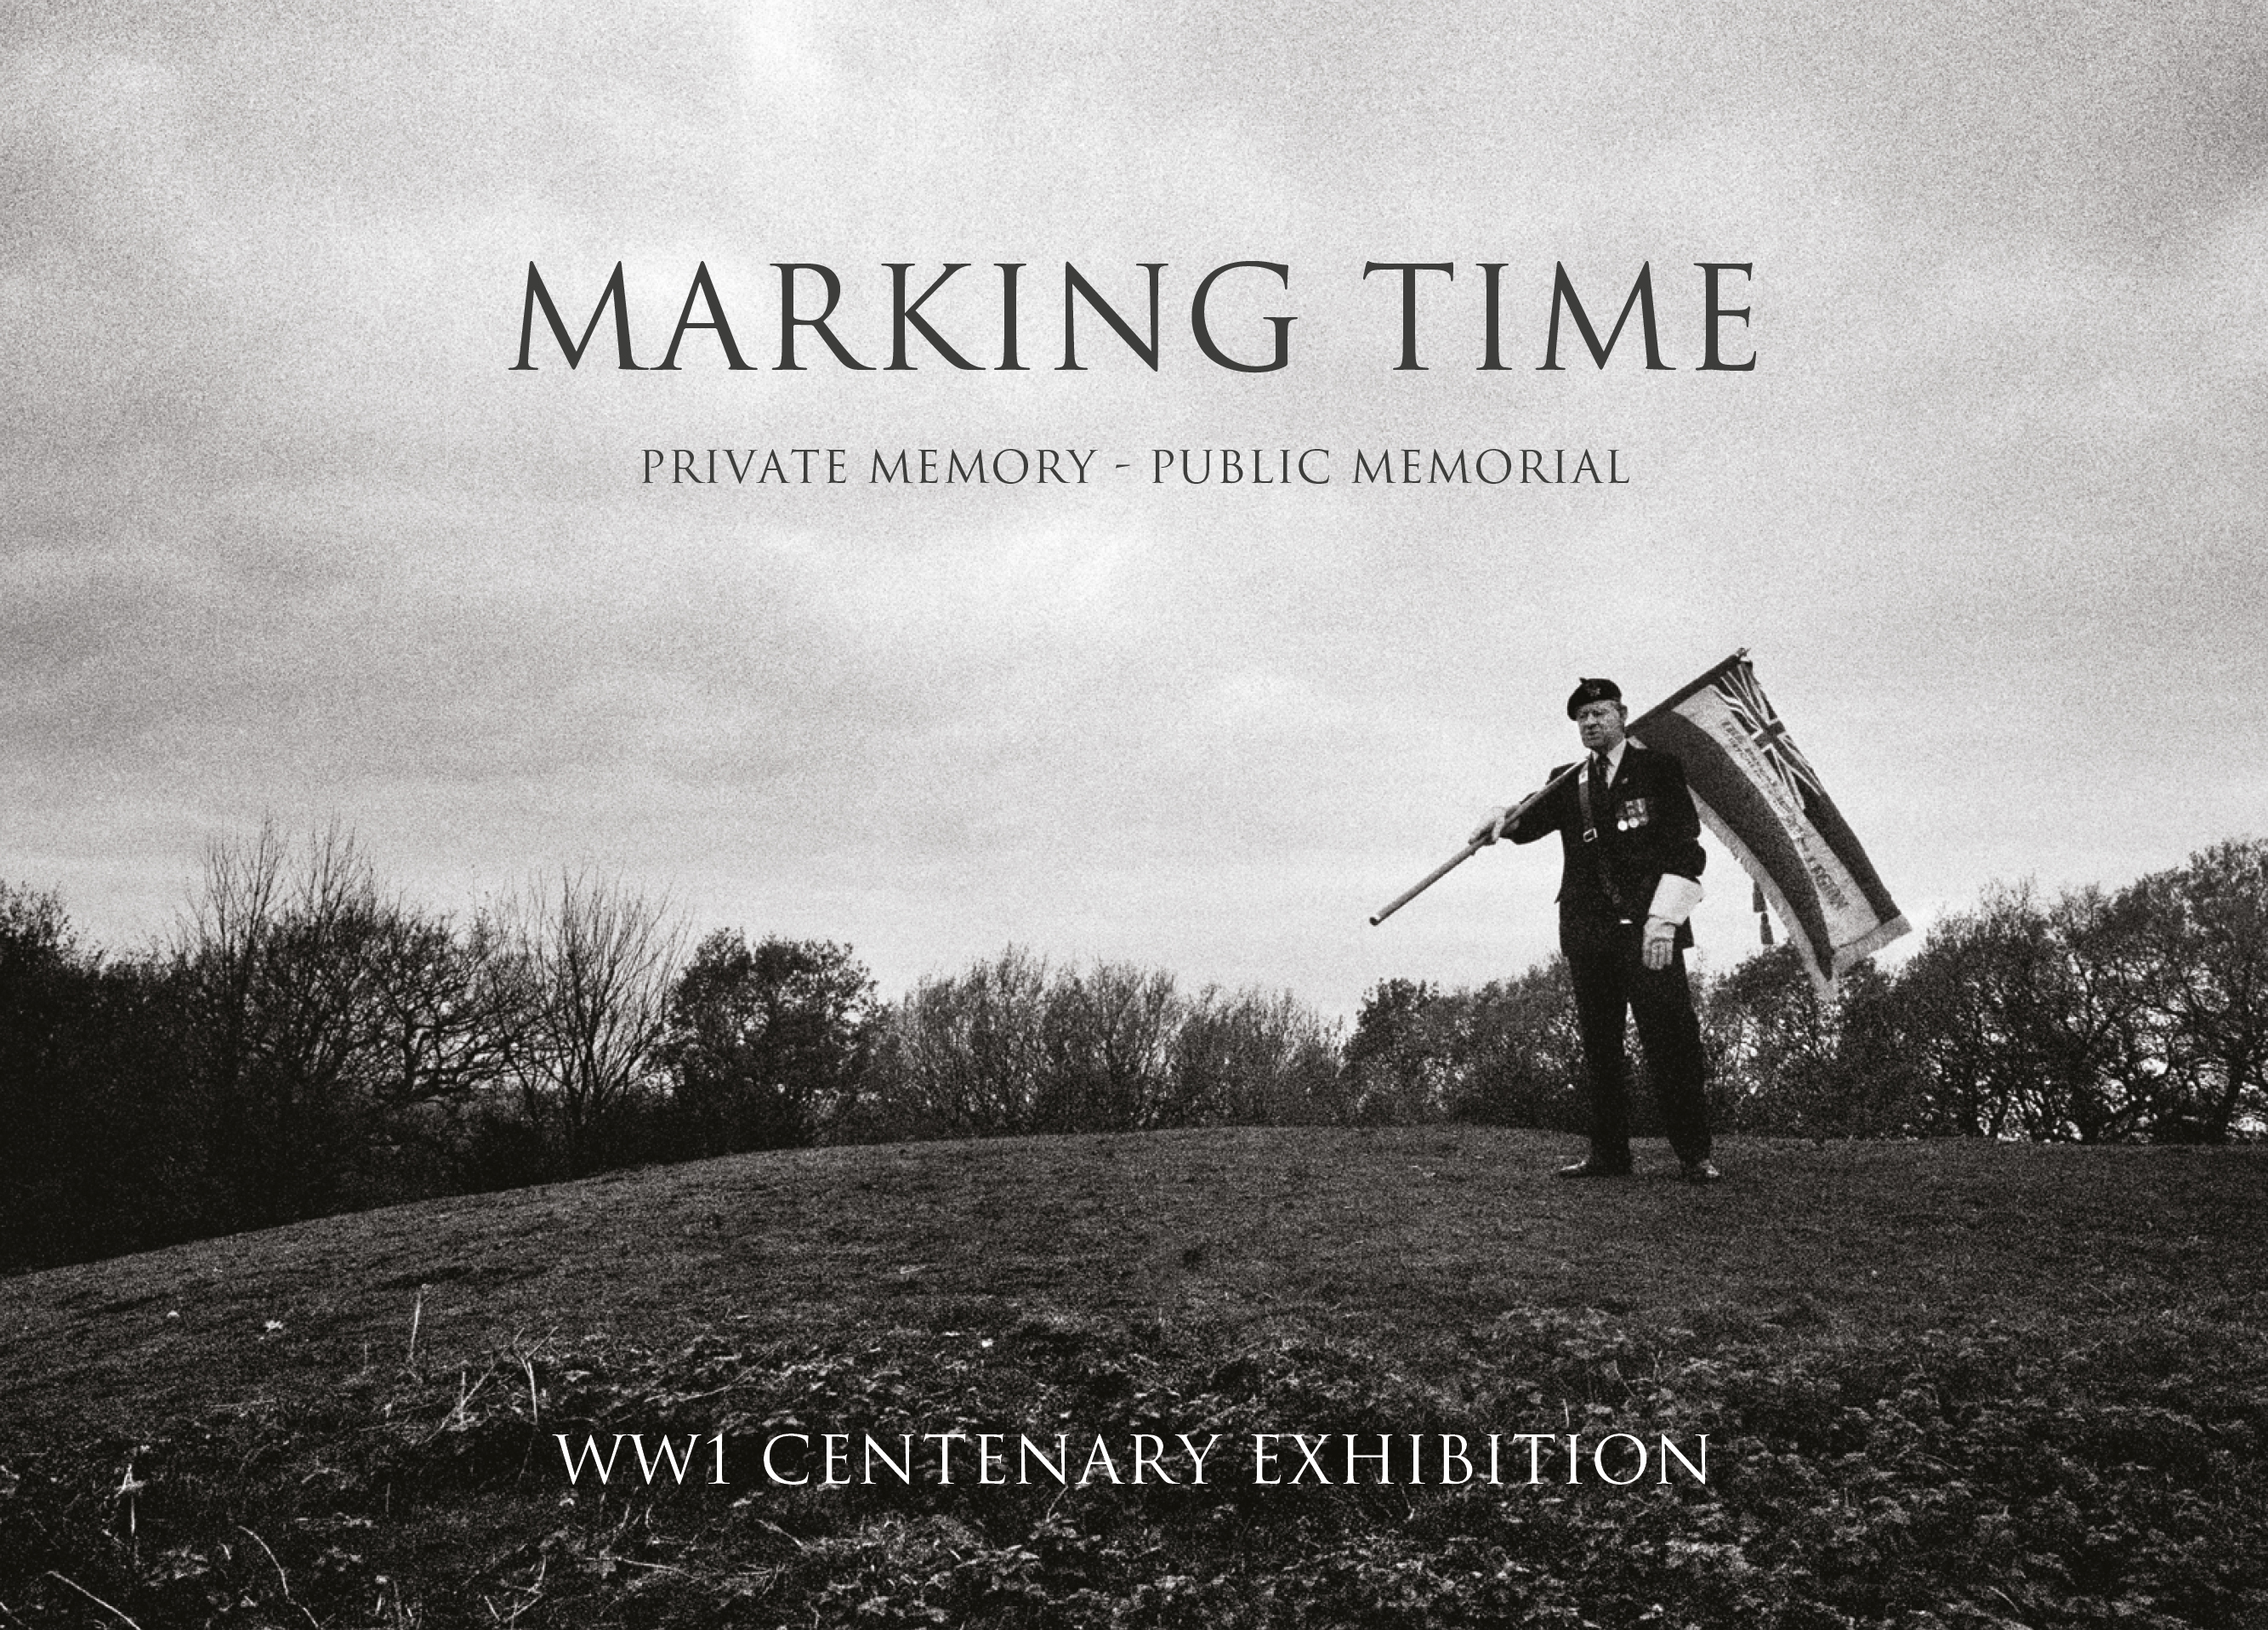 Marking Time Exhibition